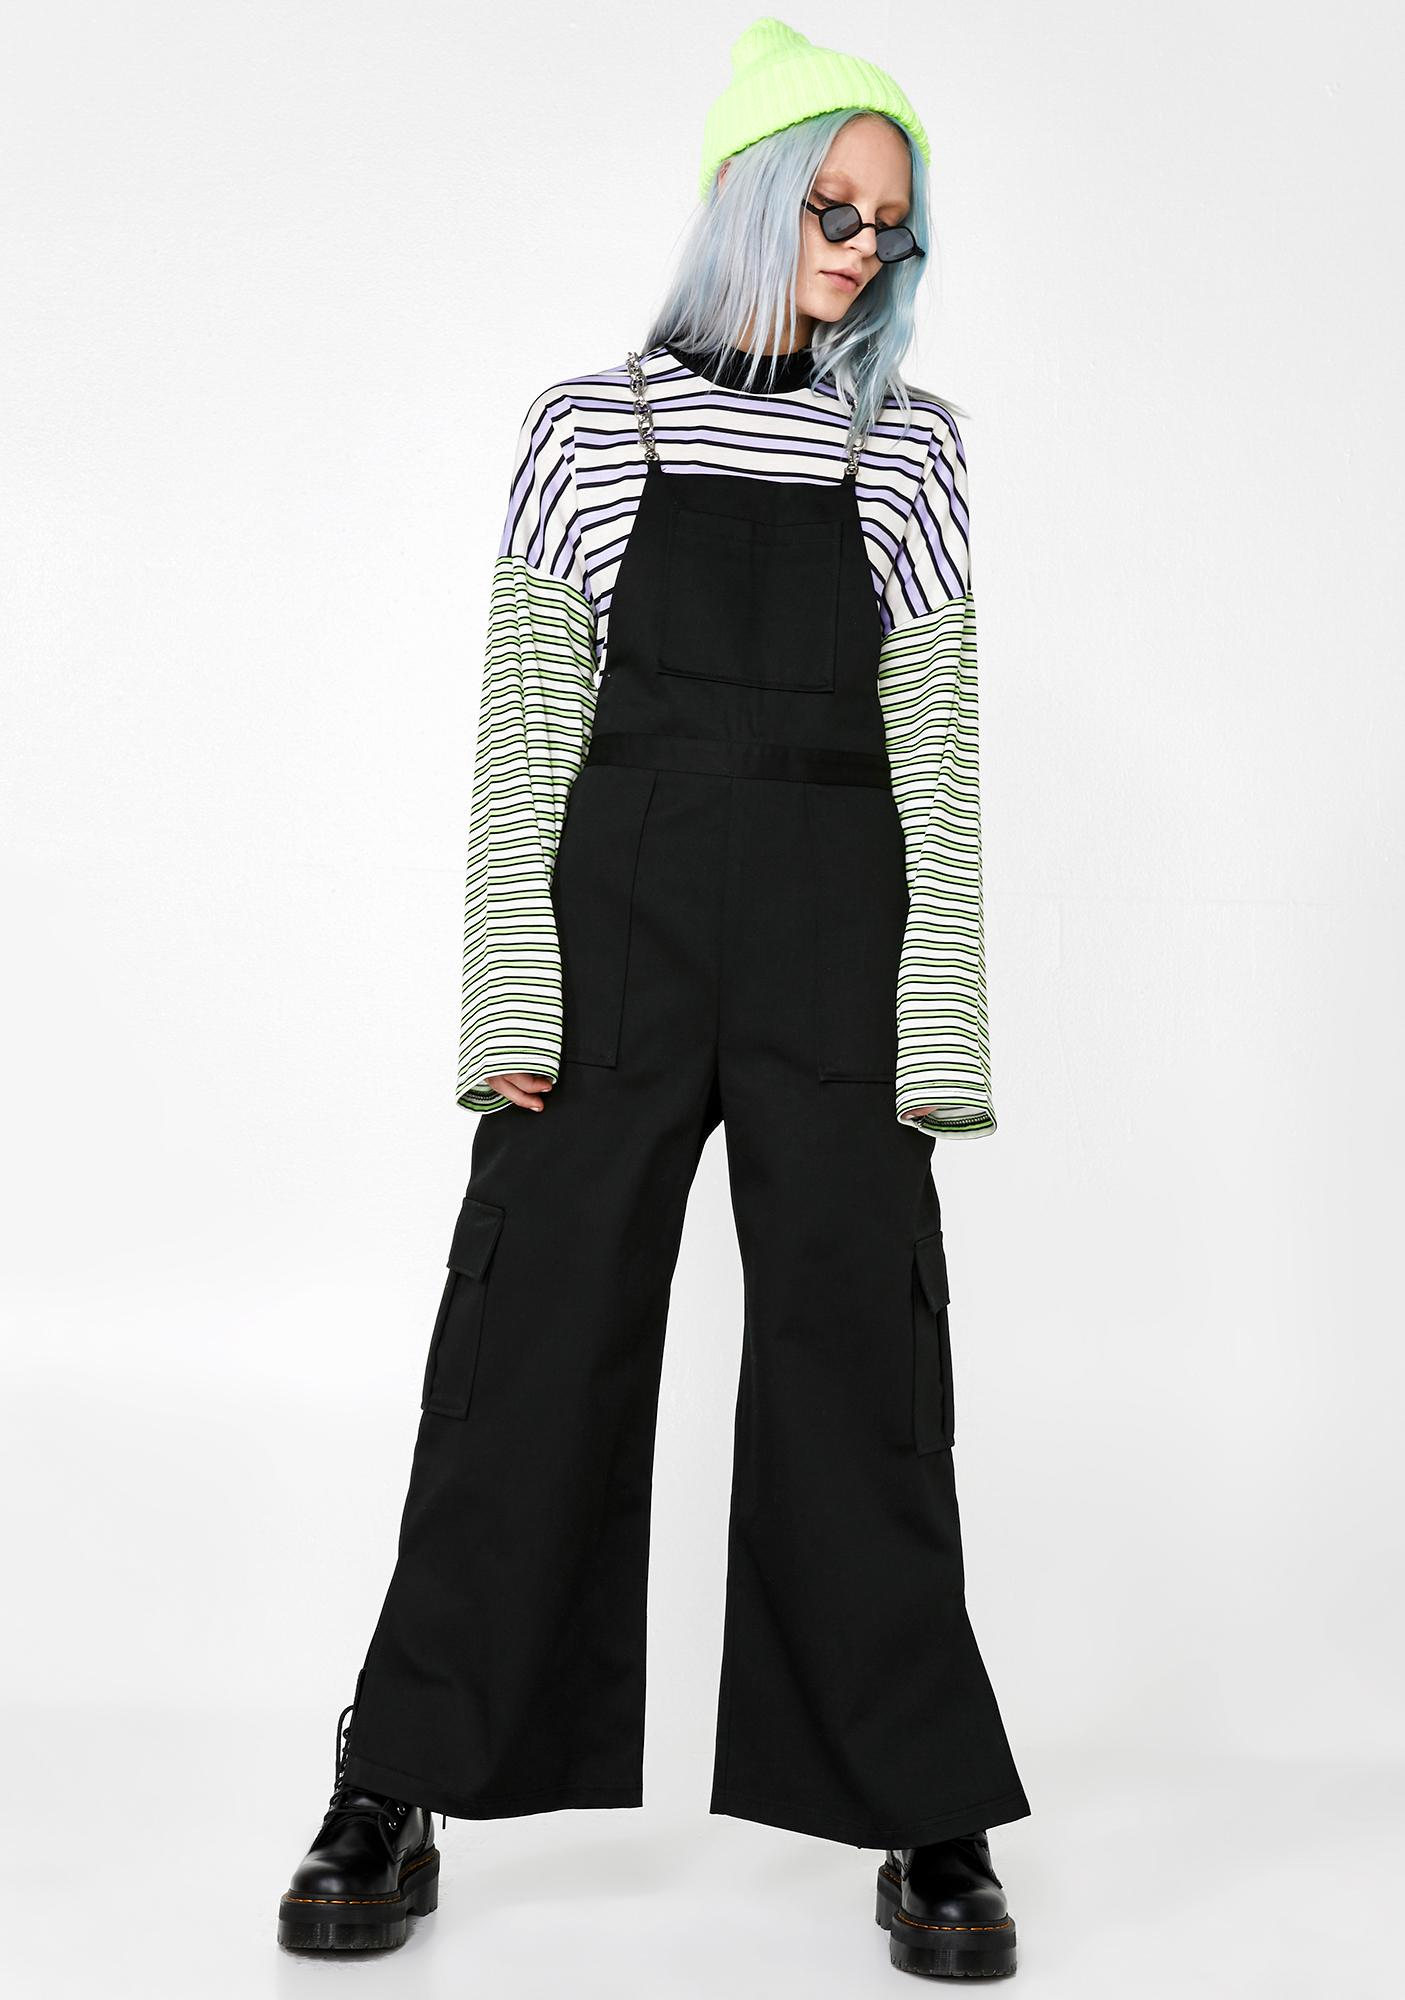 The Ragged Priest Wrench Dungarees